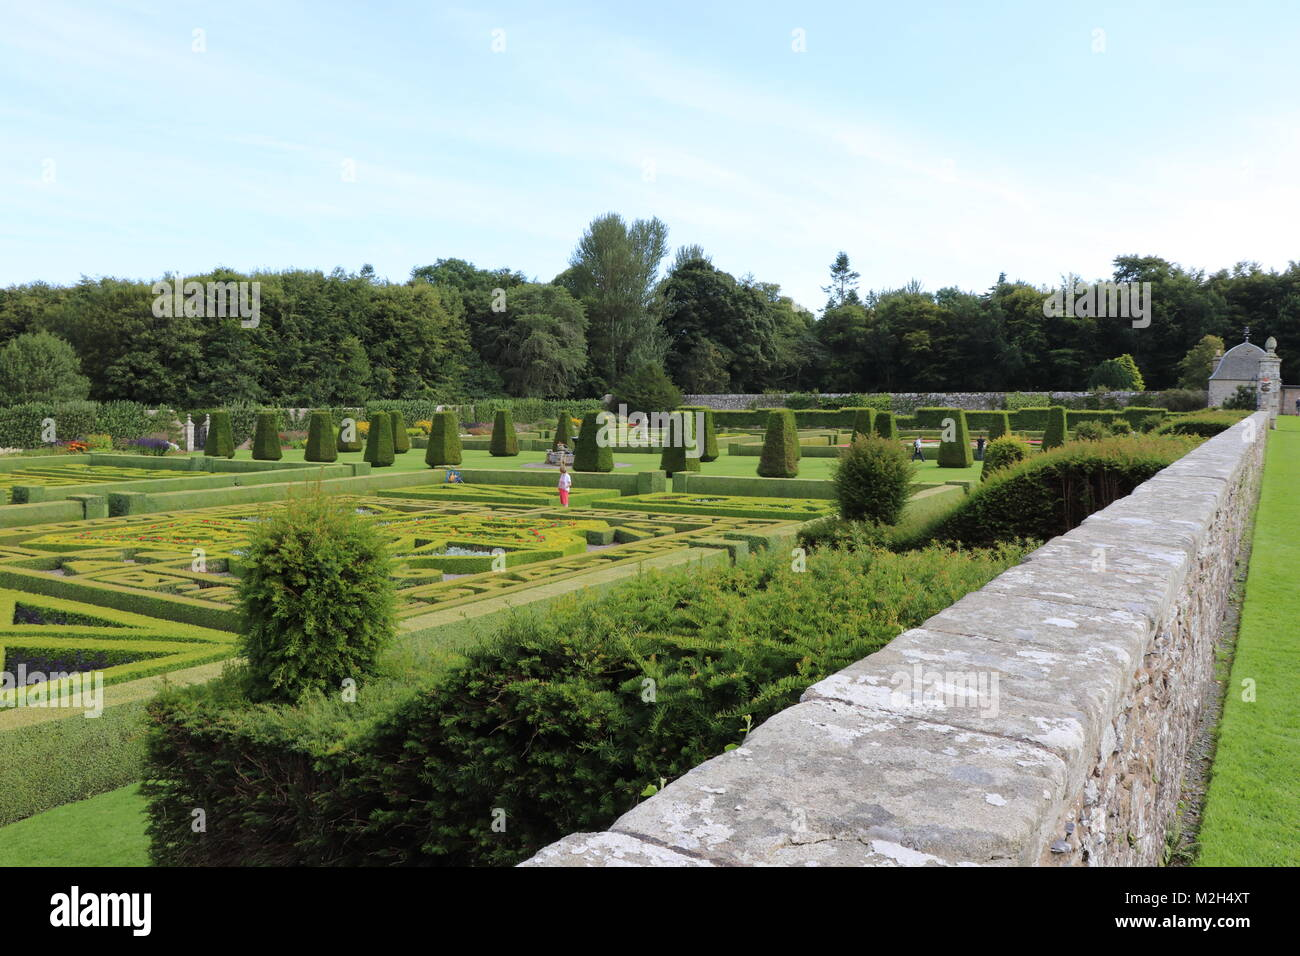 Flowers, plants, ornamental features in Pitmedden Garden, near Ellon, Aberdeenshire, Scotland UK - Stock Image